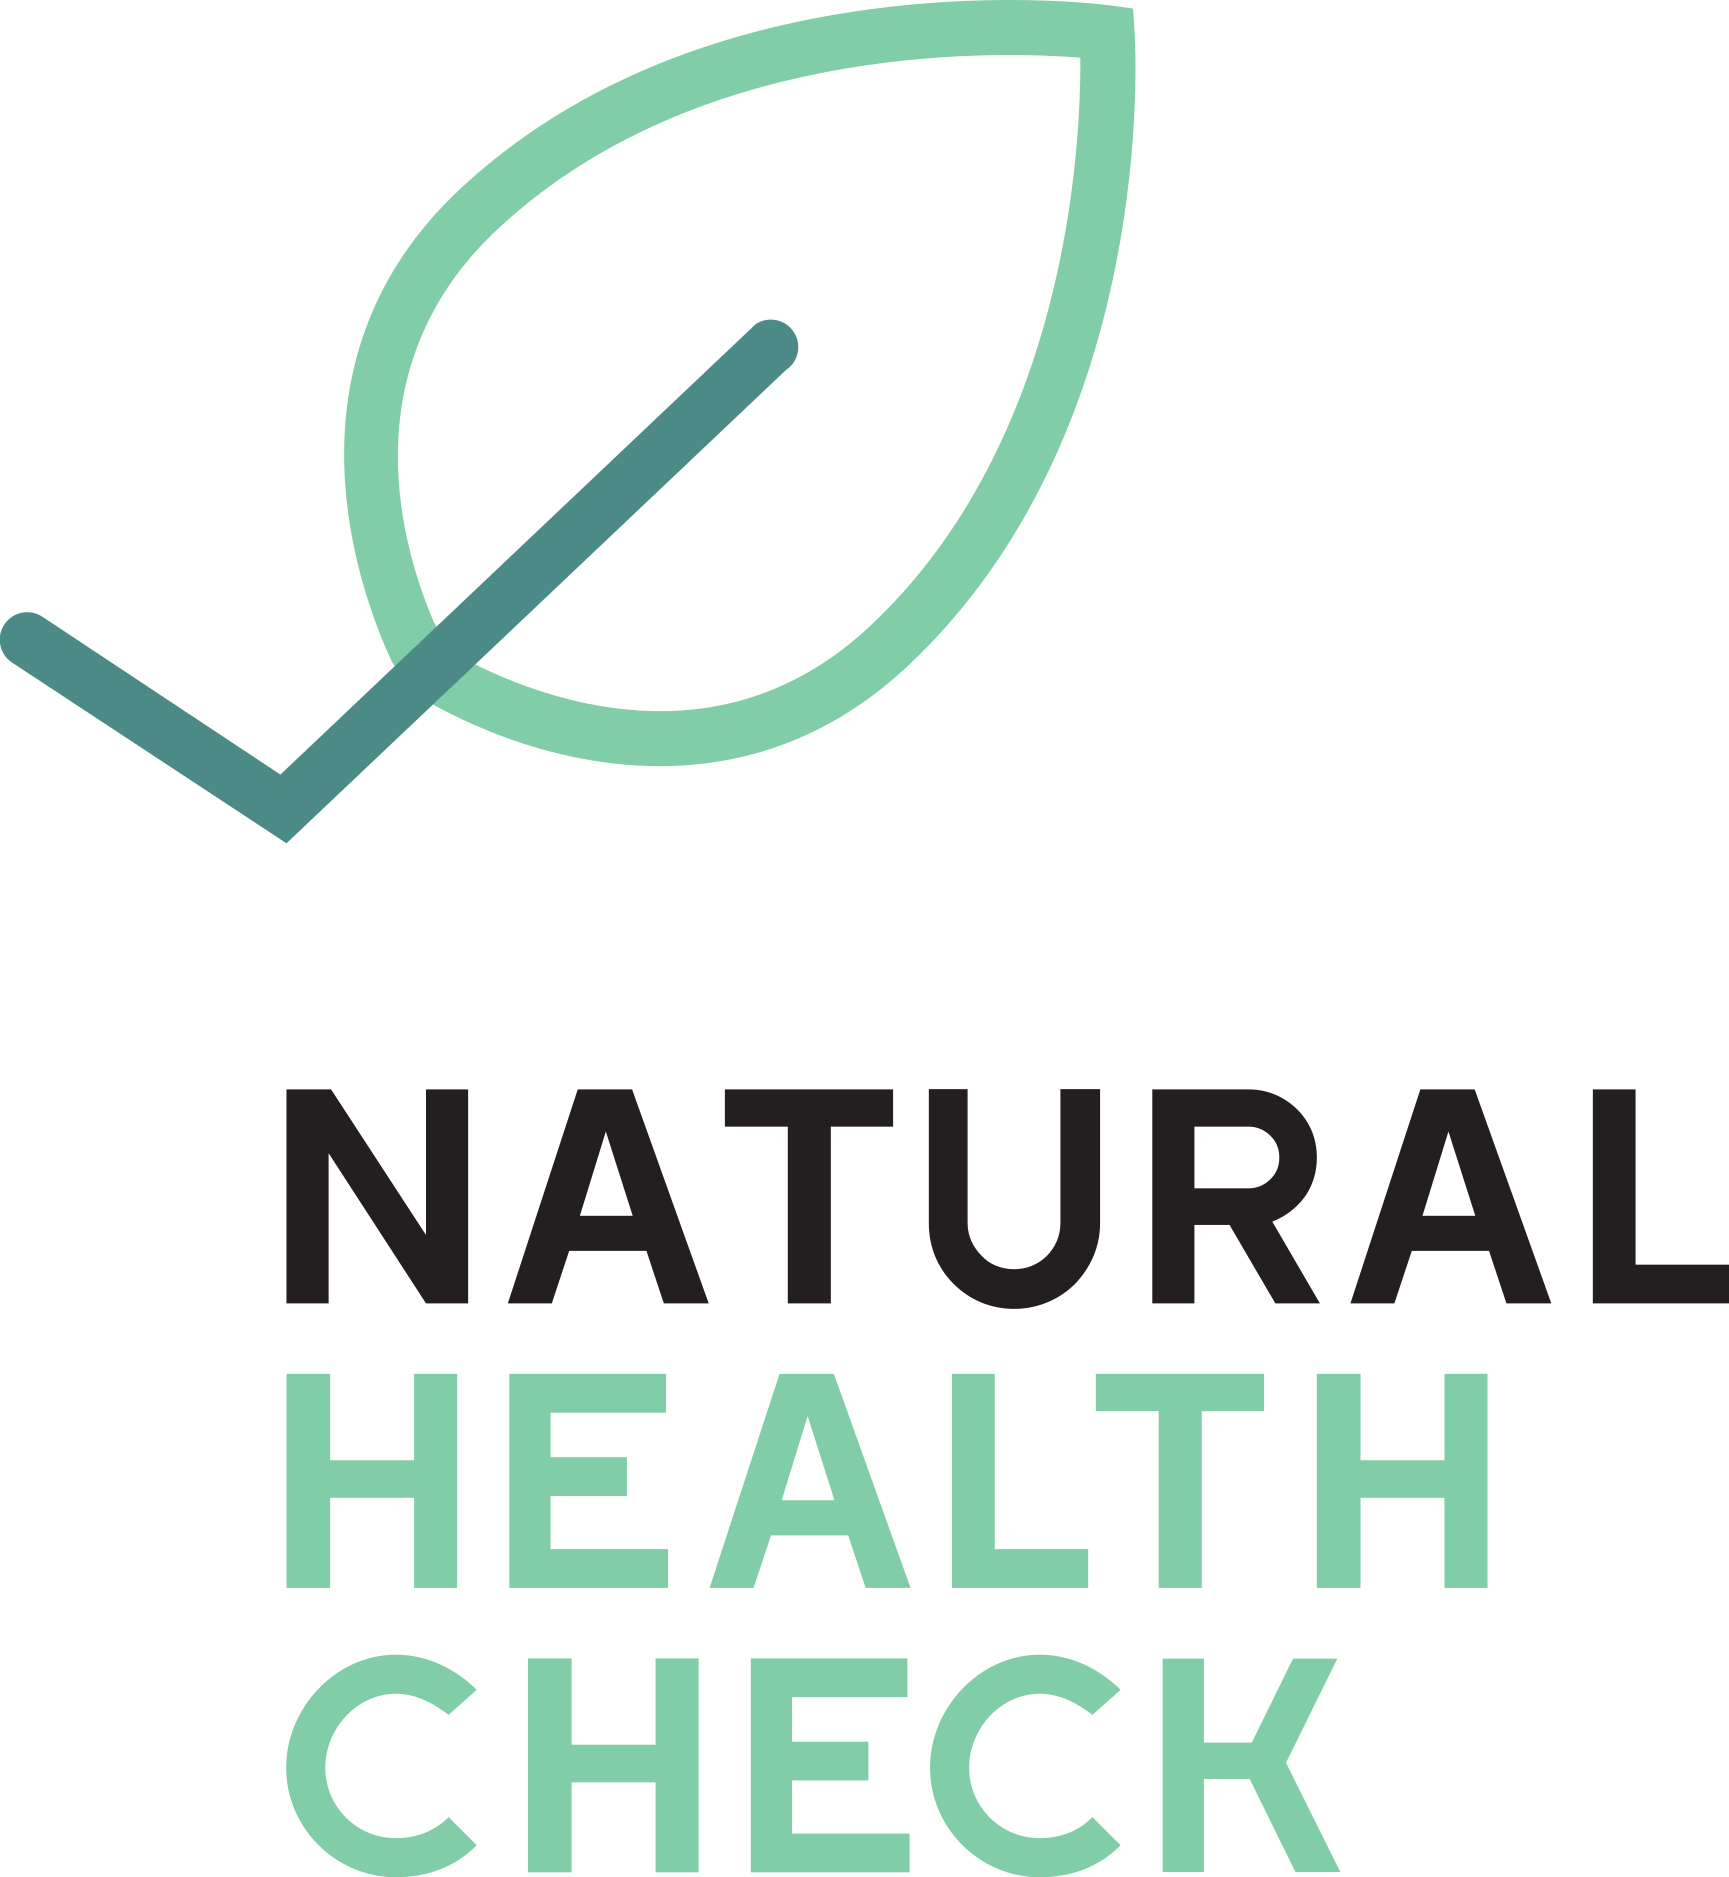 Natural Health Check